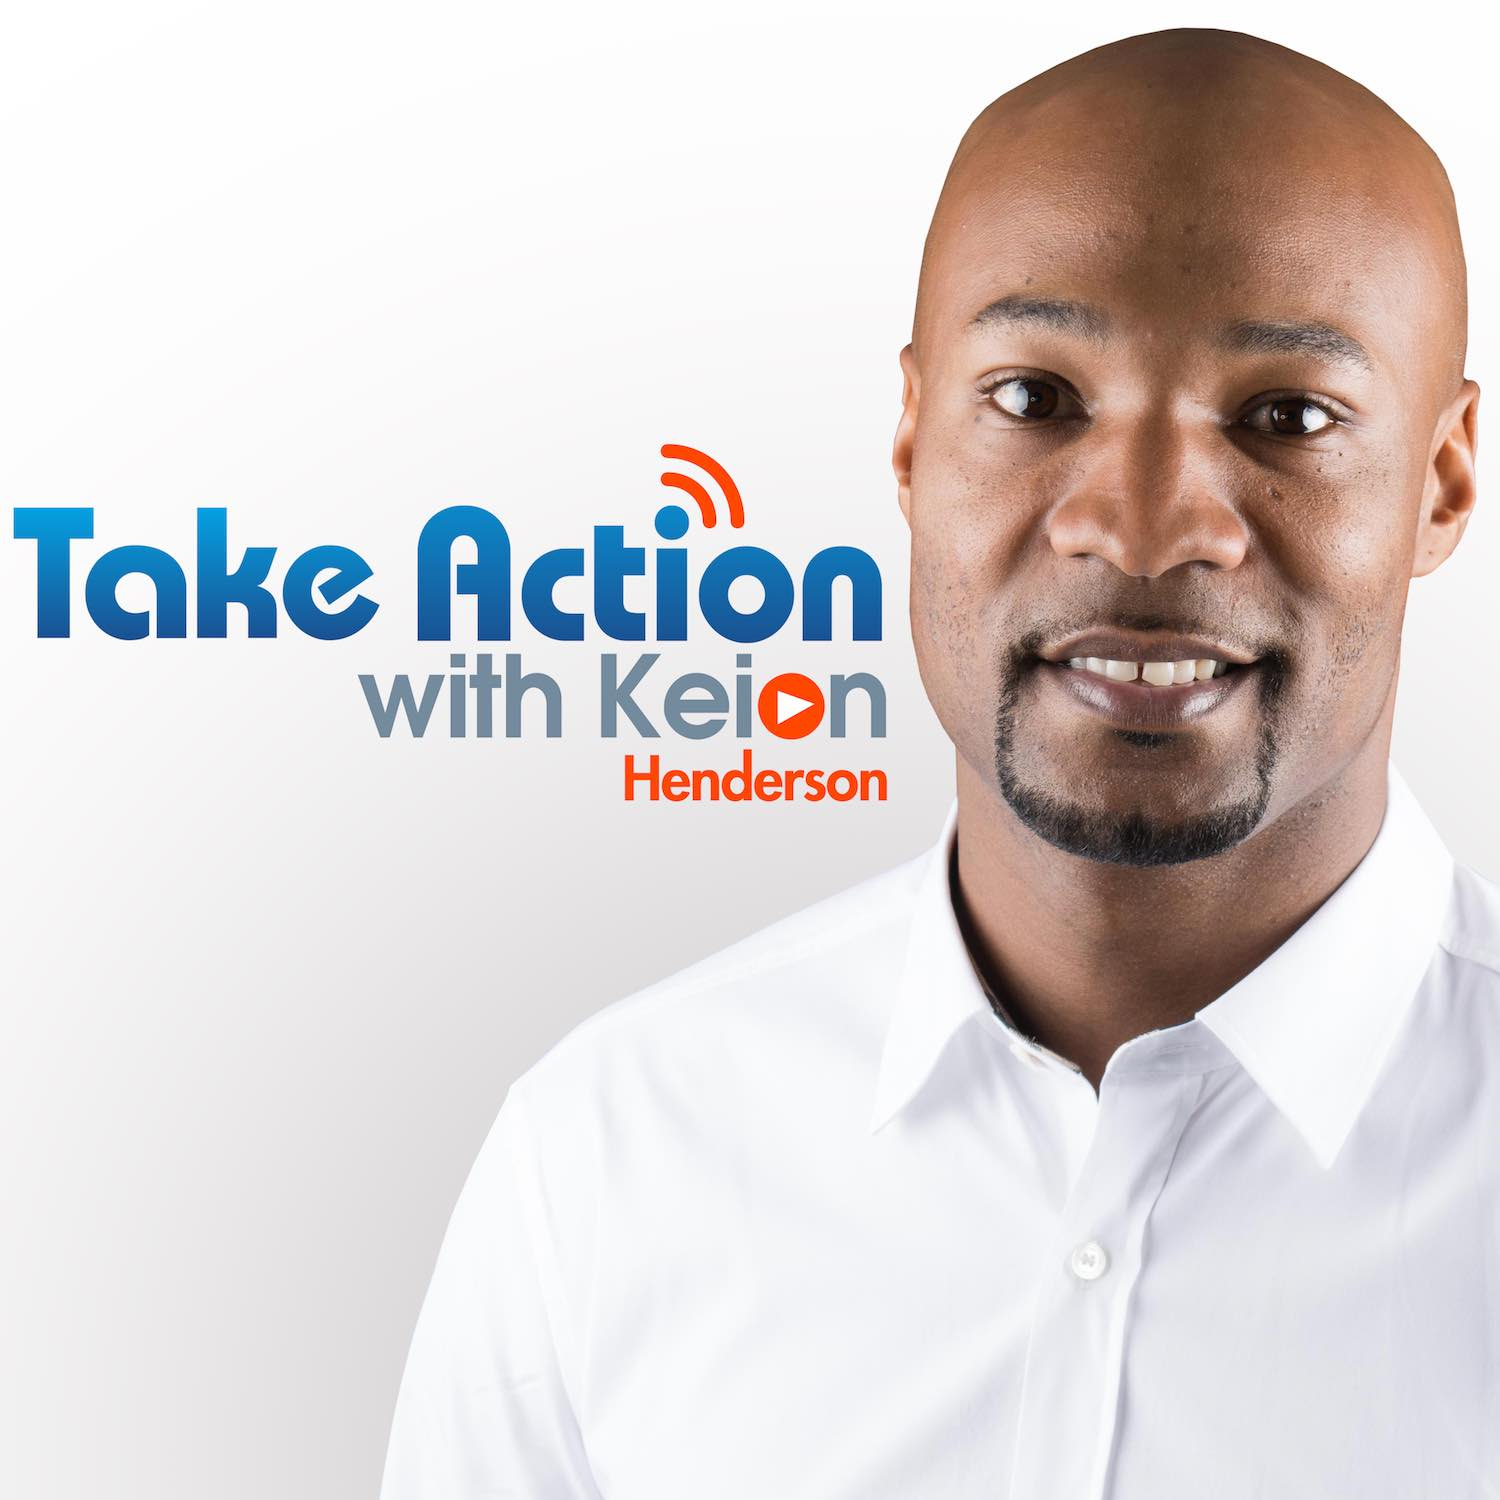 Take Action with Keion Henderson